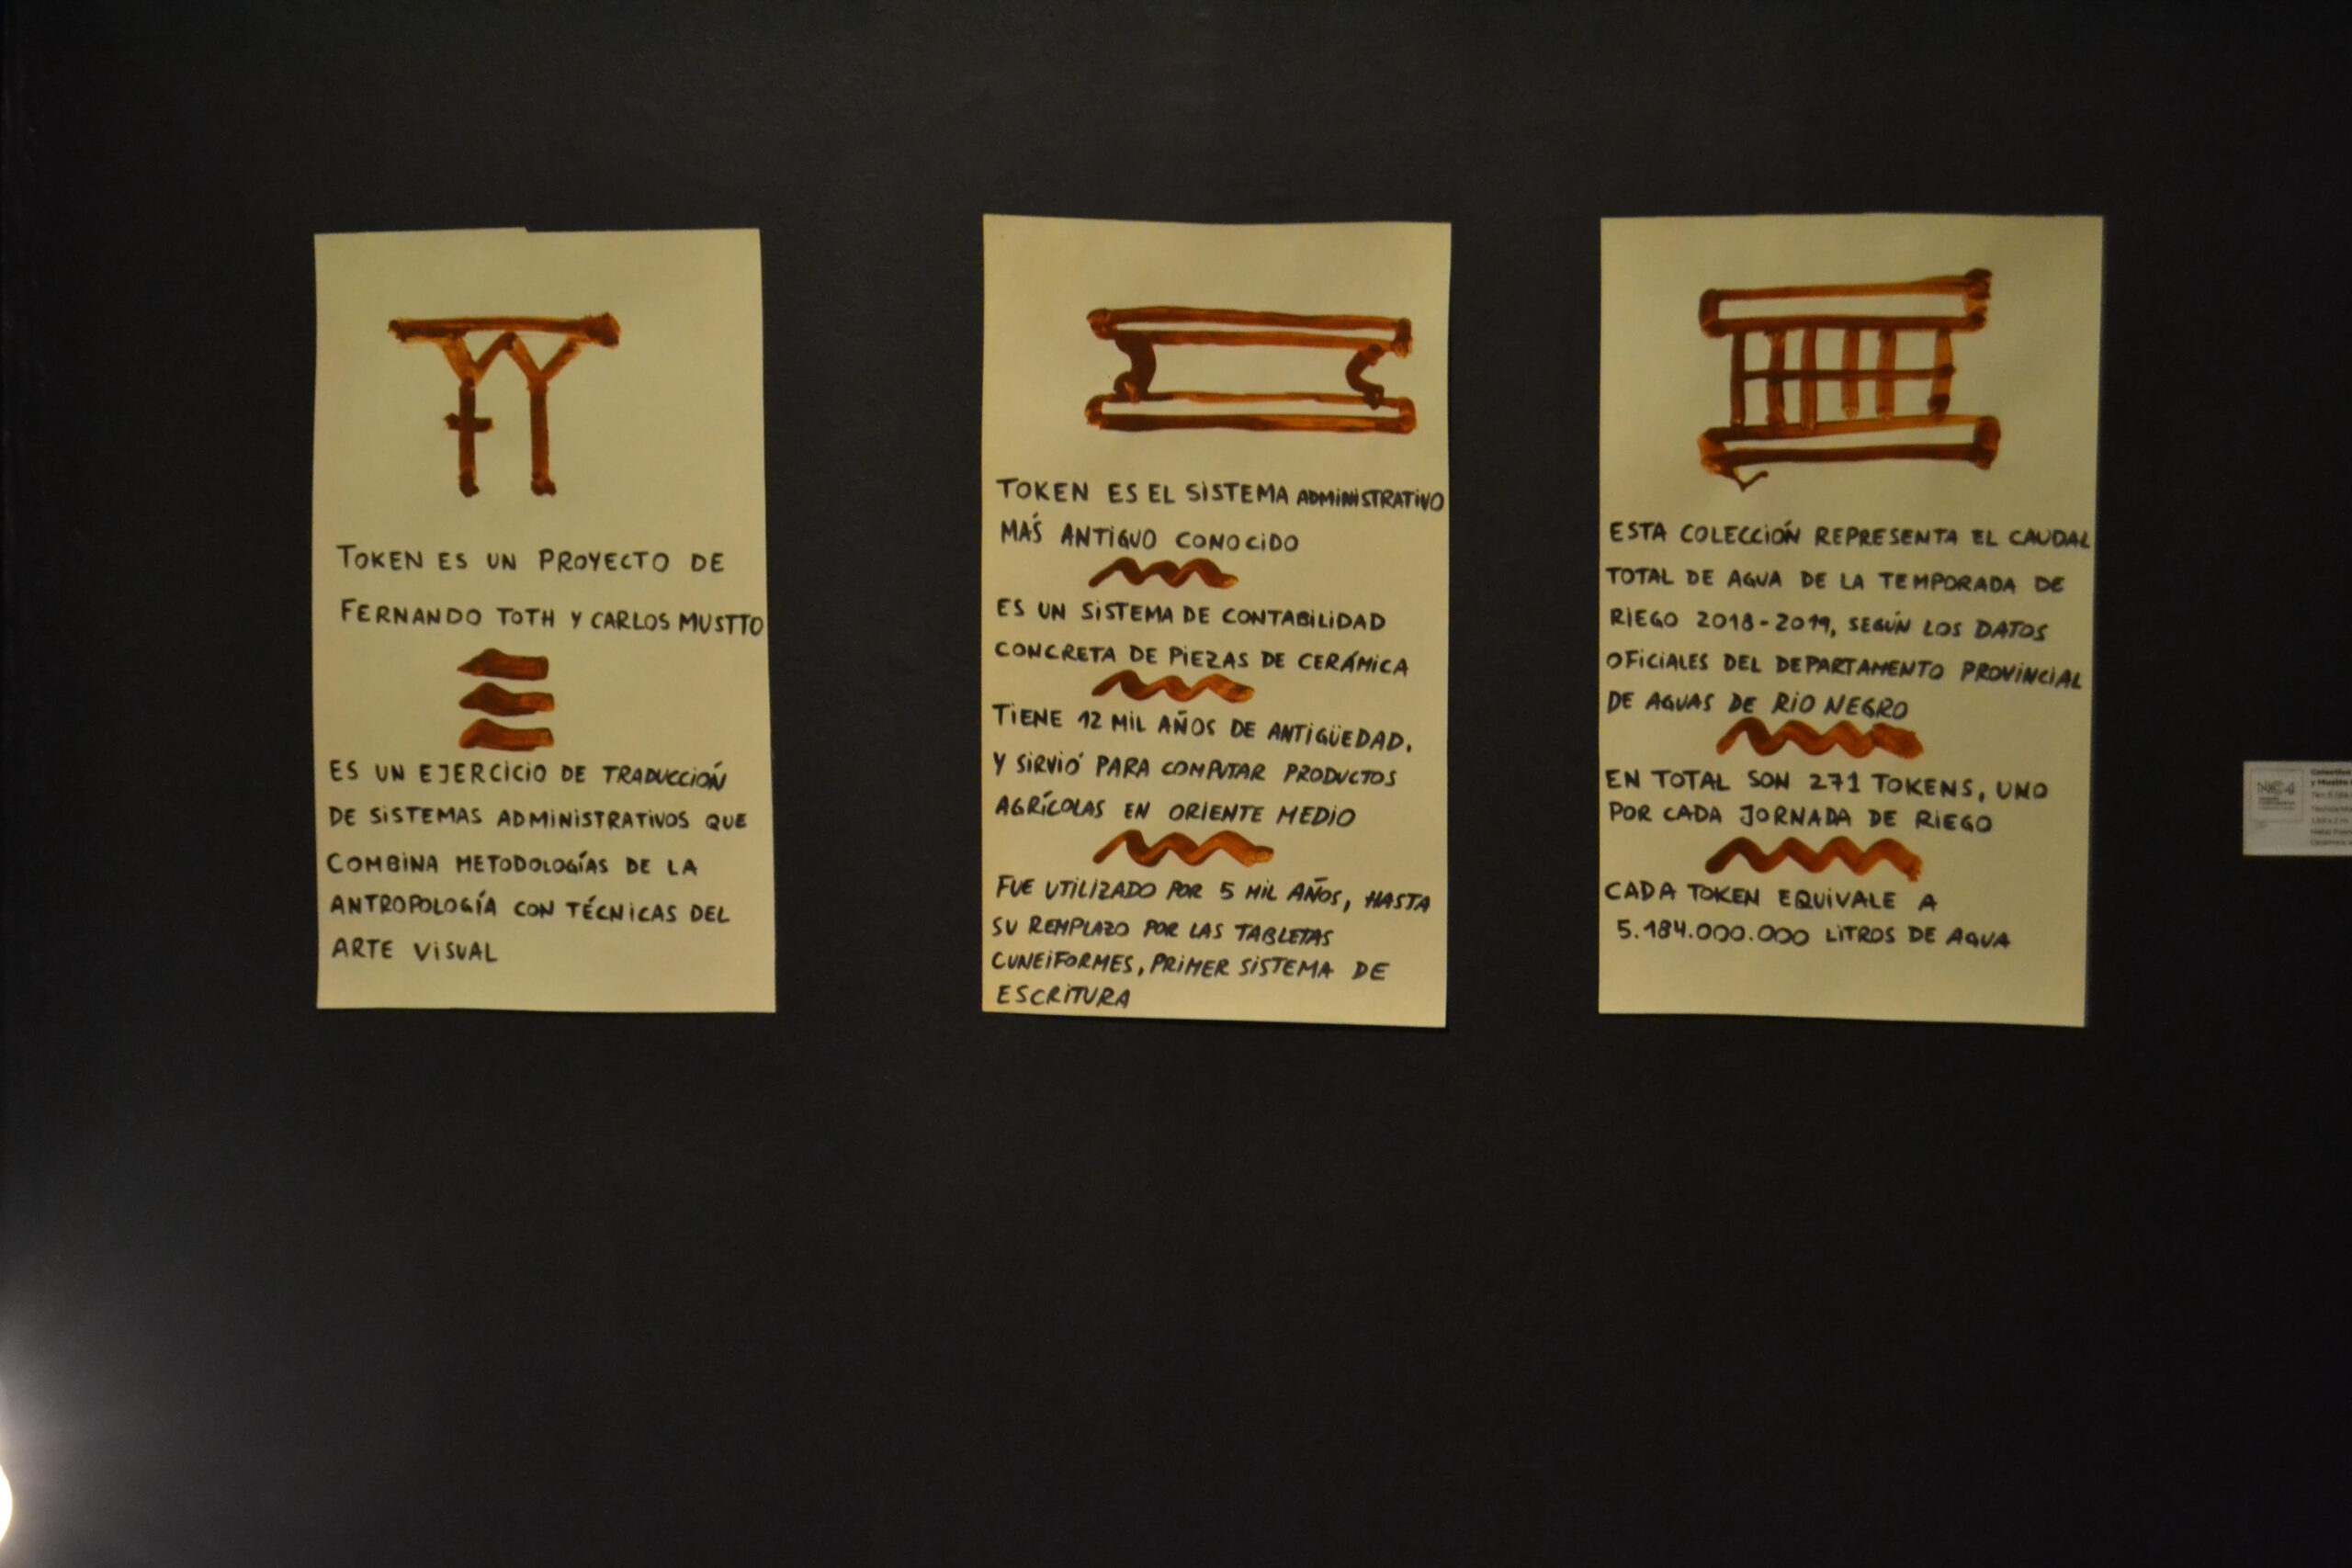 Three illustrations of symbols with text in spanish mounted on the wall in gallery